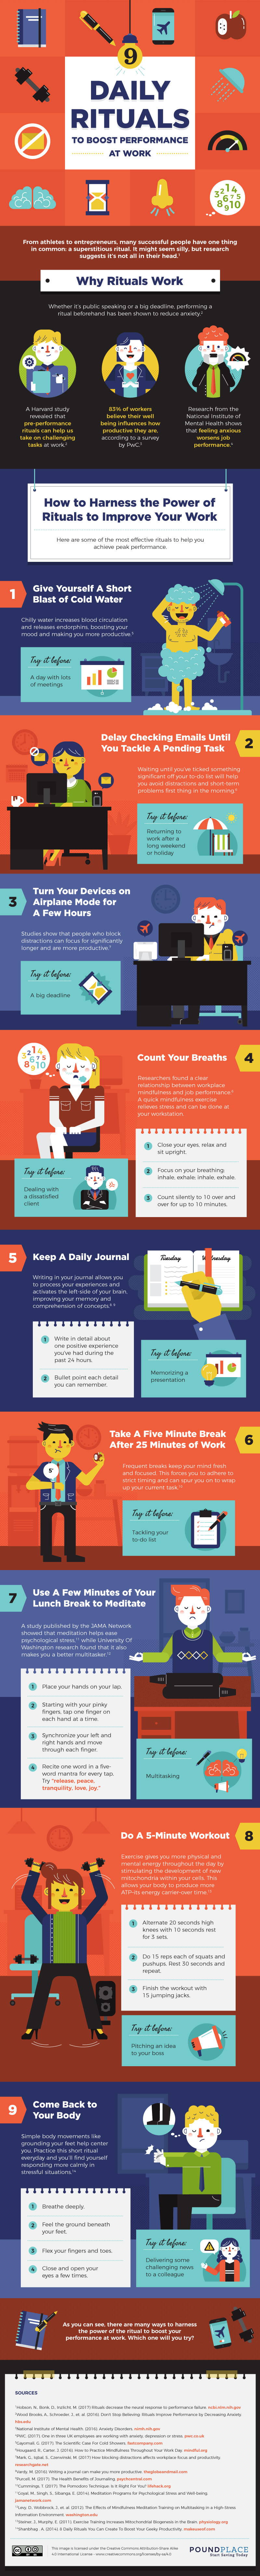 The Importance of Daily Rituals to Enhance Productivity and Performance - Infographic